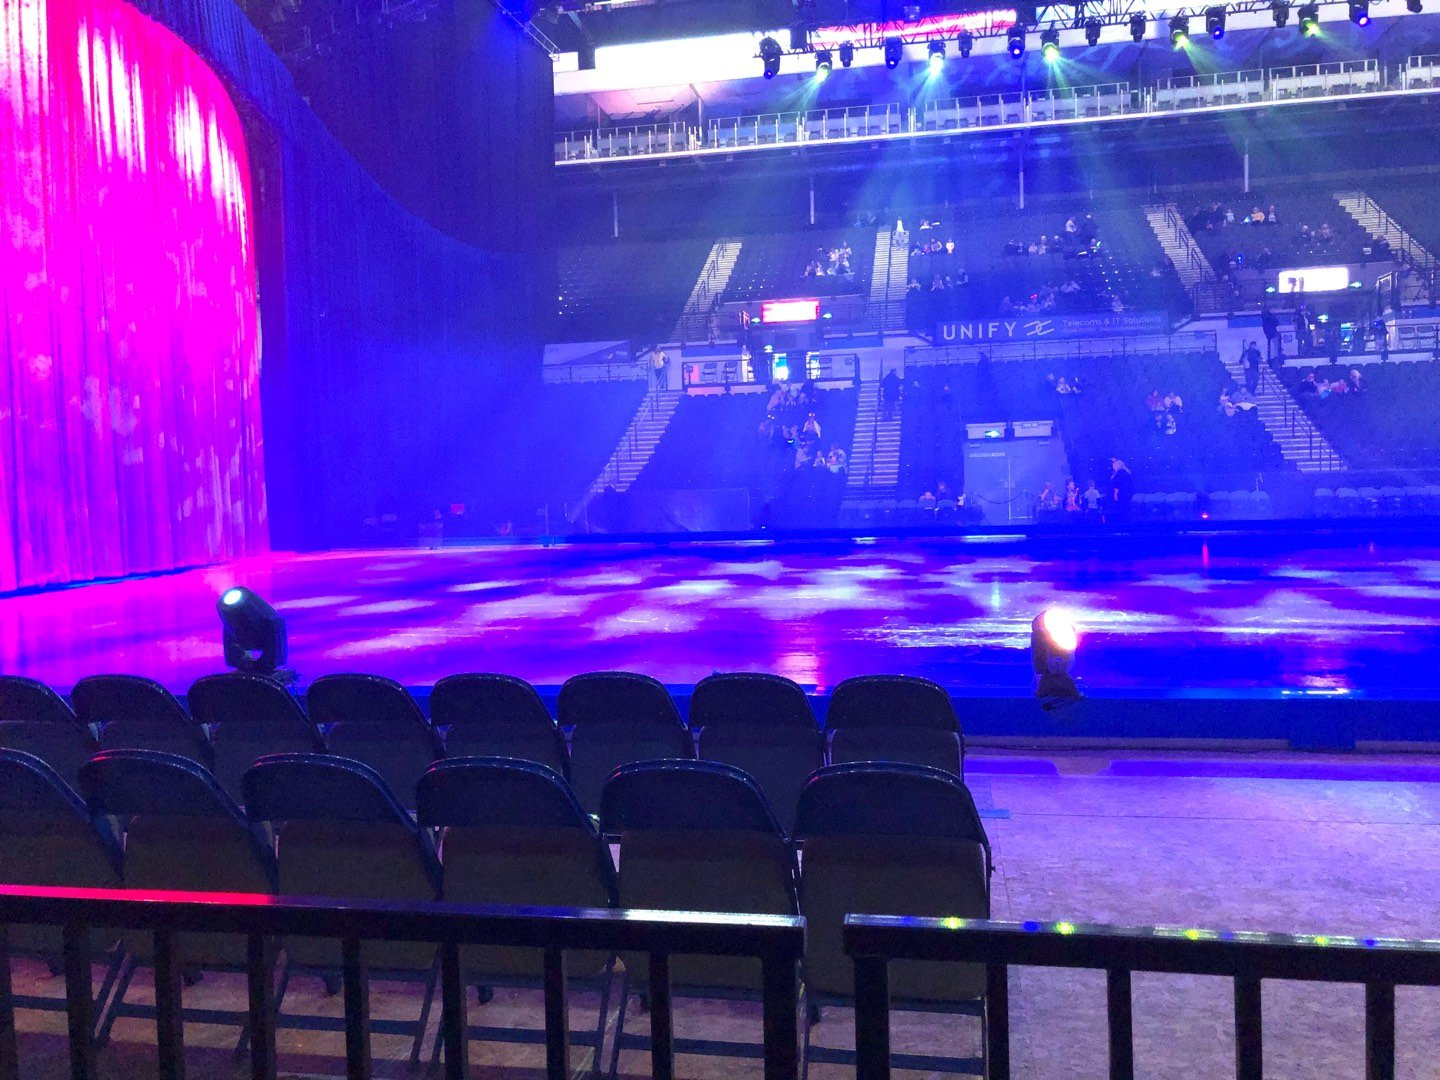 Sheffield Arena Section 104 Row B Seat 1